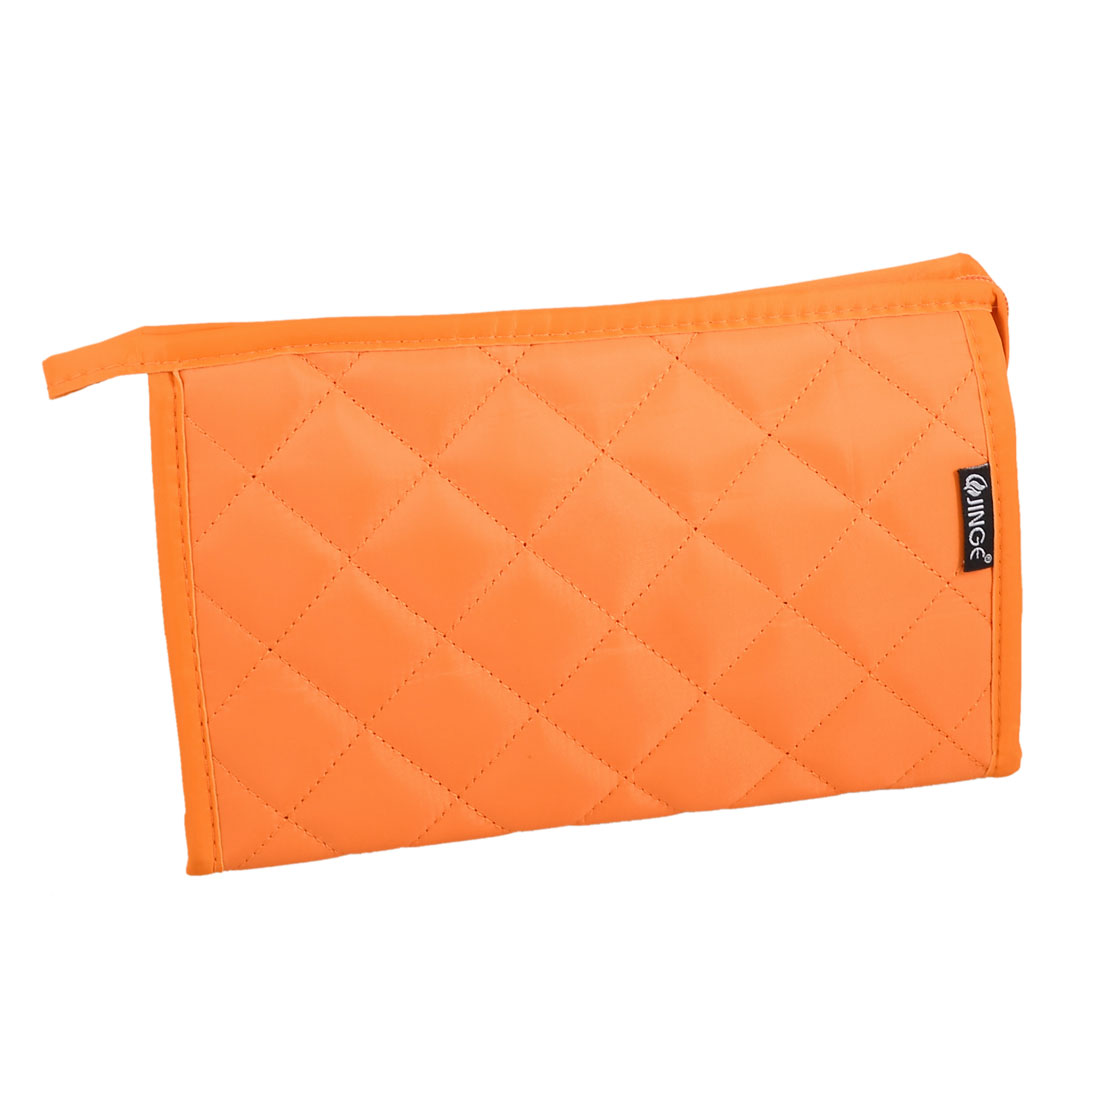 Check Pattern Zip up Padded Case Make up Cosmetic Bag Pouch Orange w Mirror